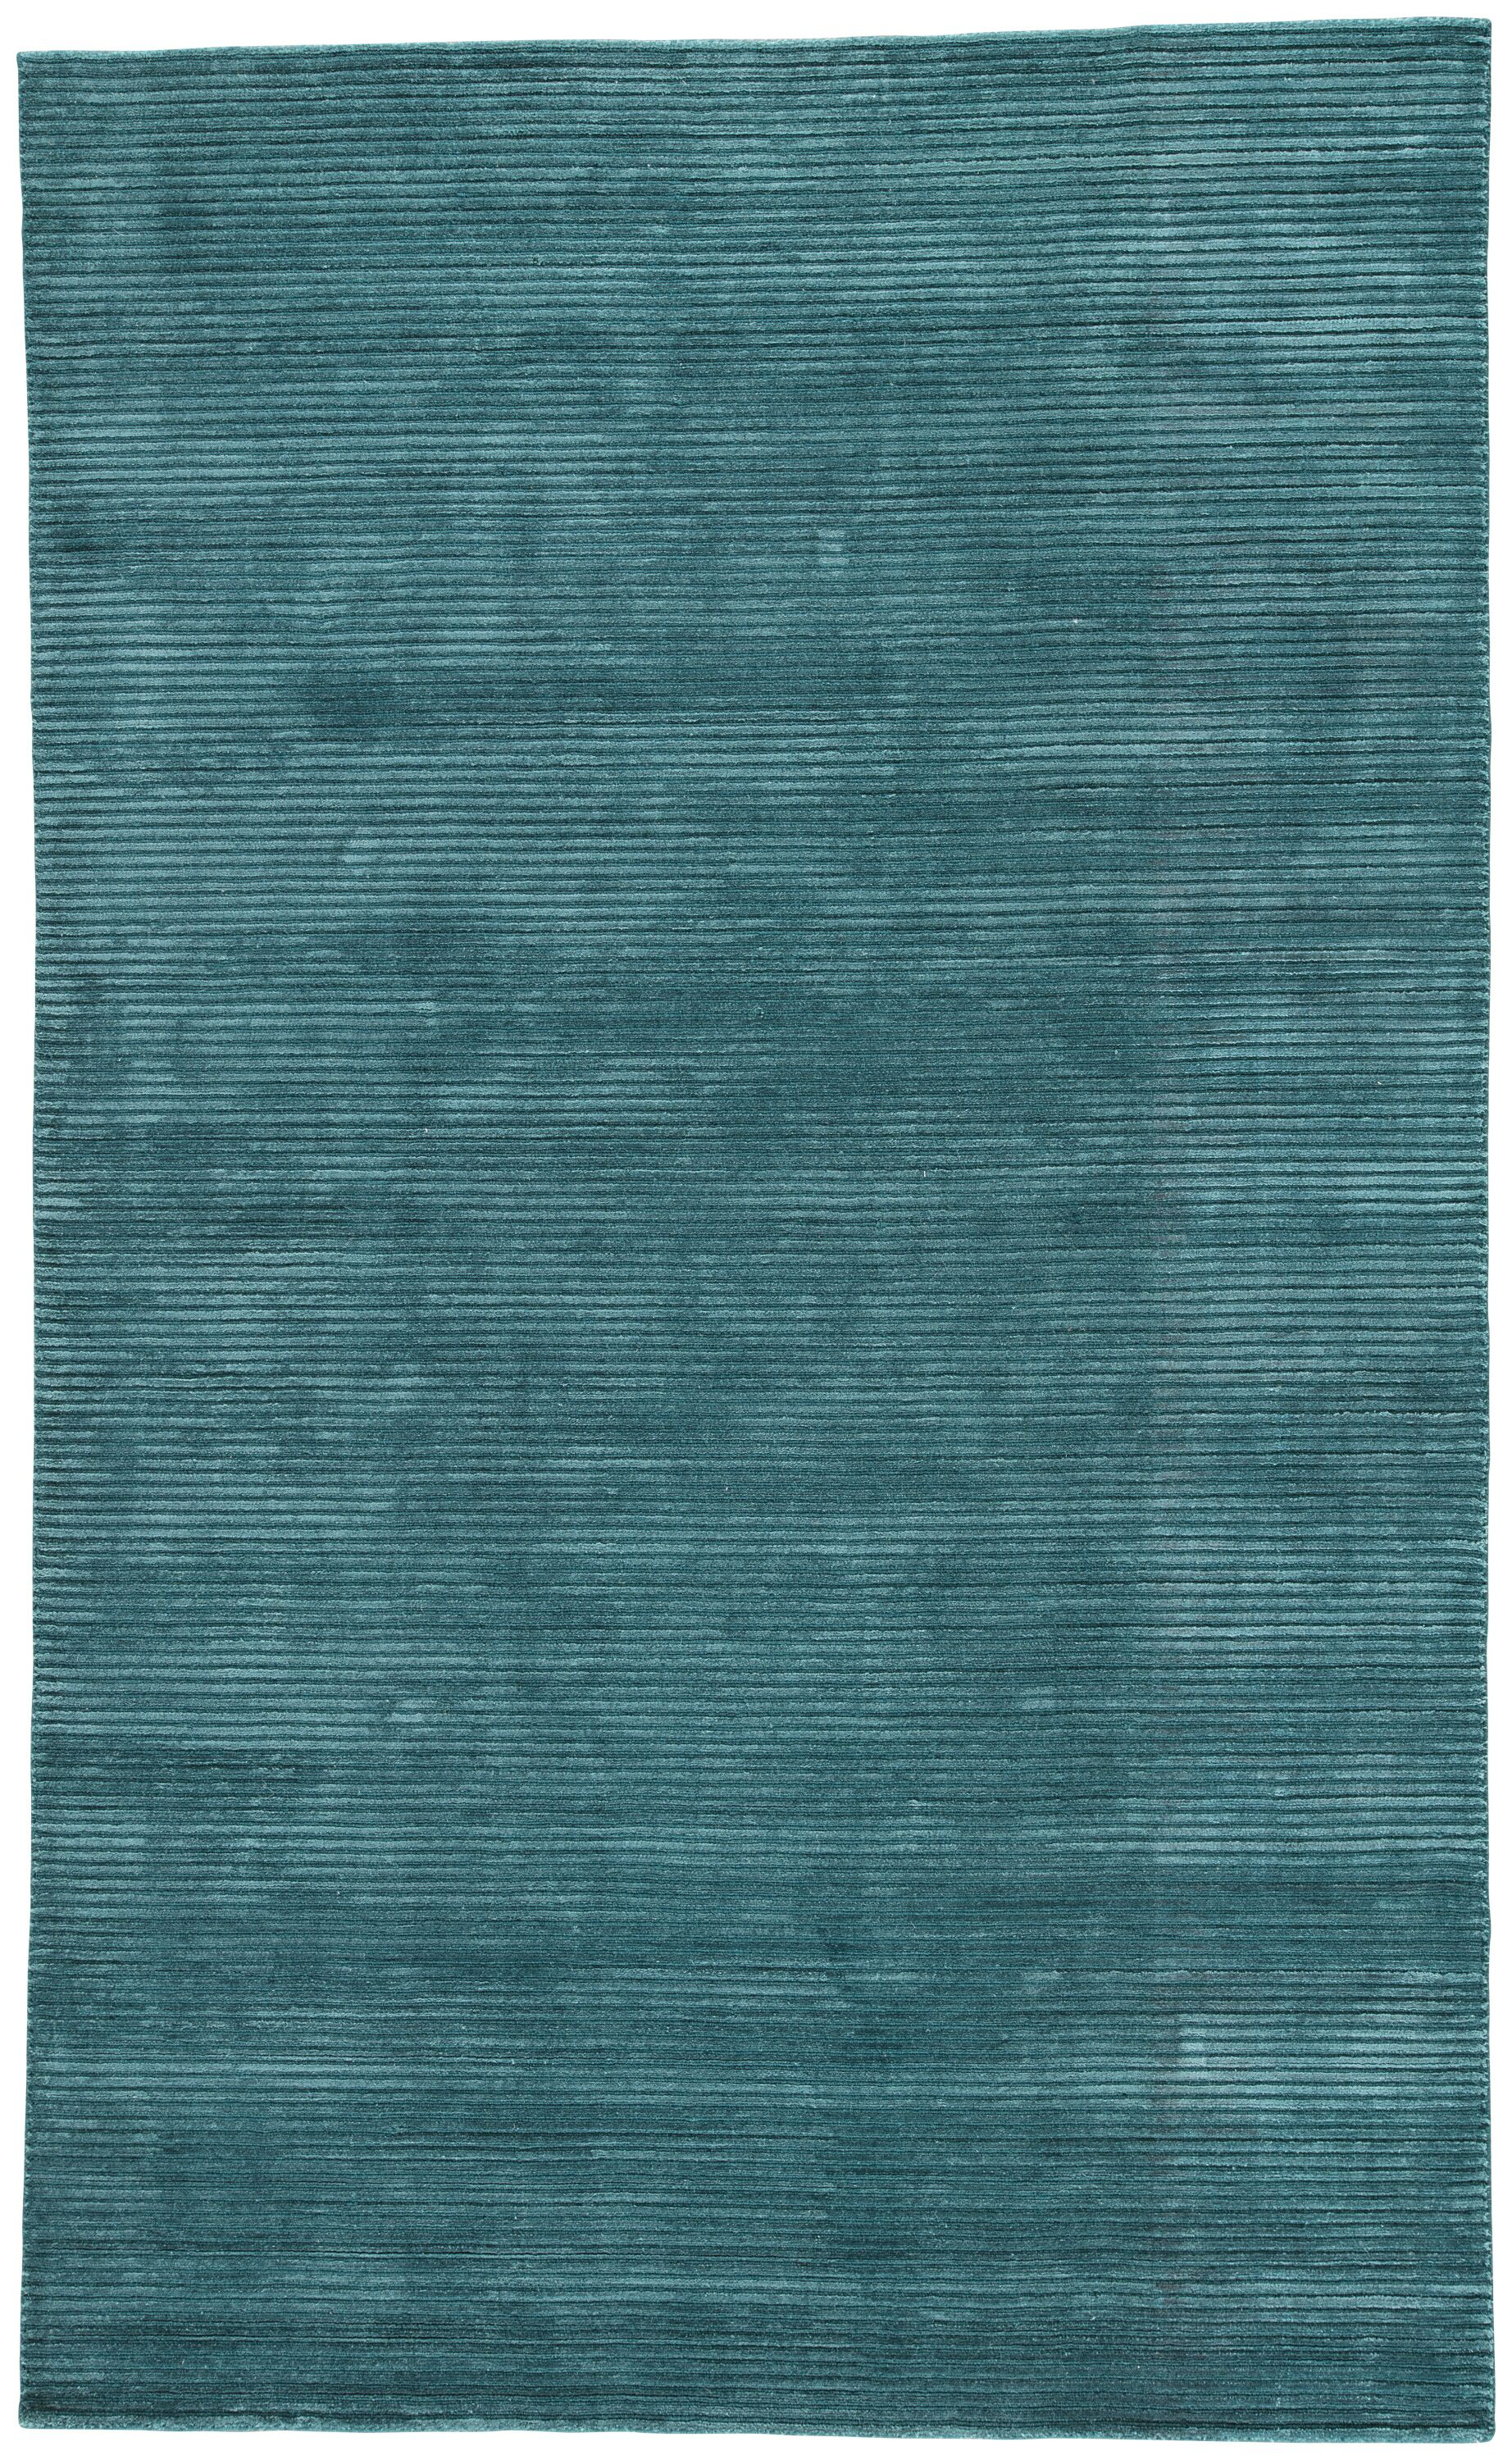 Nico Wool and Art Silk Solids/Handloom Blue Area Rug Rug Size: Rectangle 8' x 10'